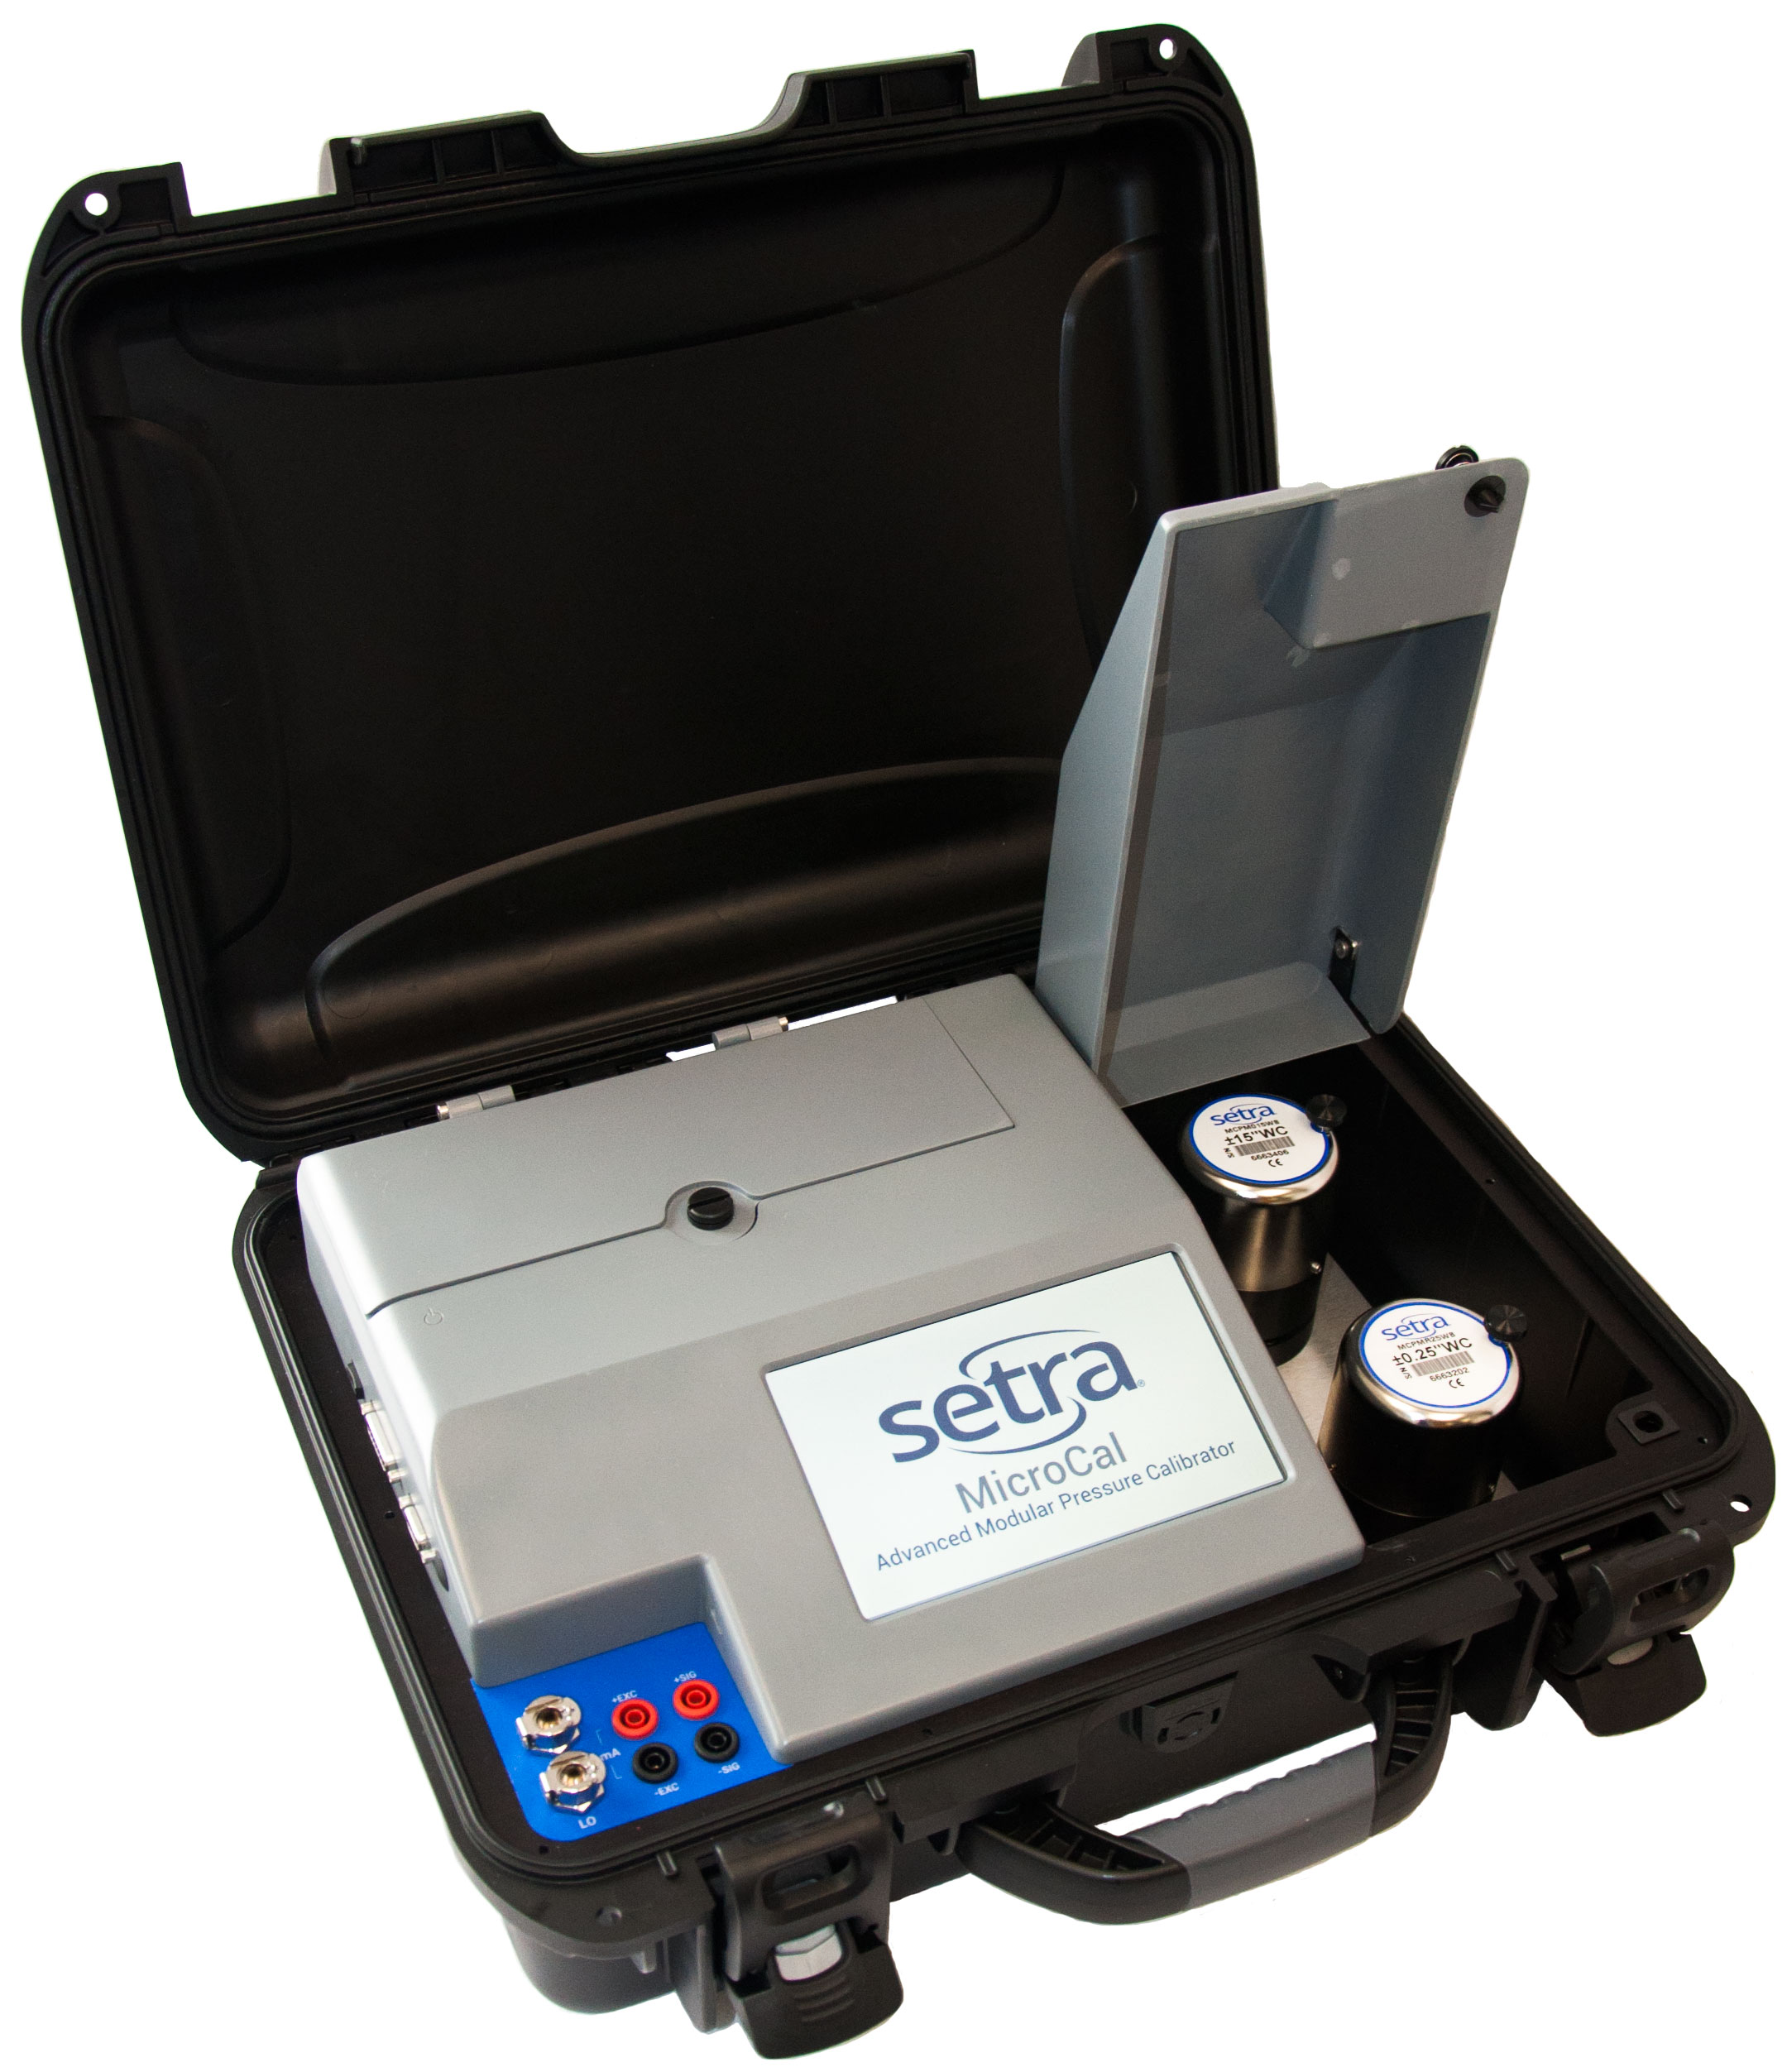 Setra's automated low pressure calibrator: The MicroCal